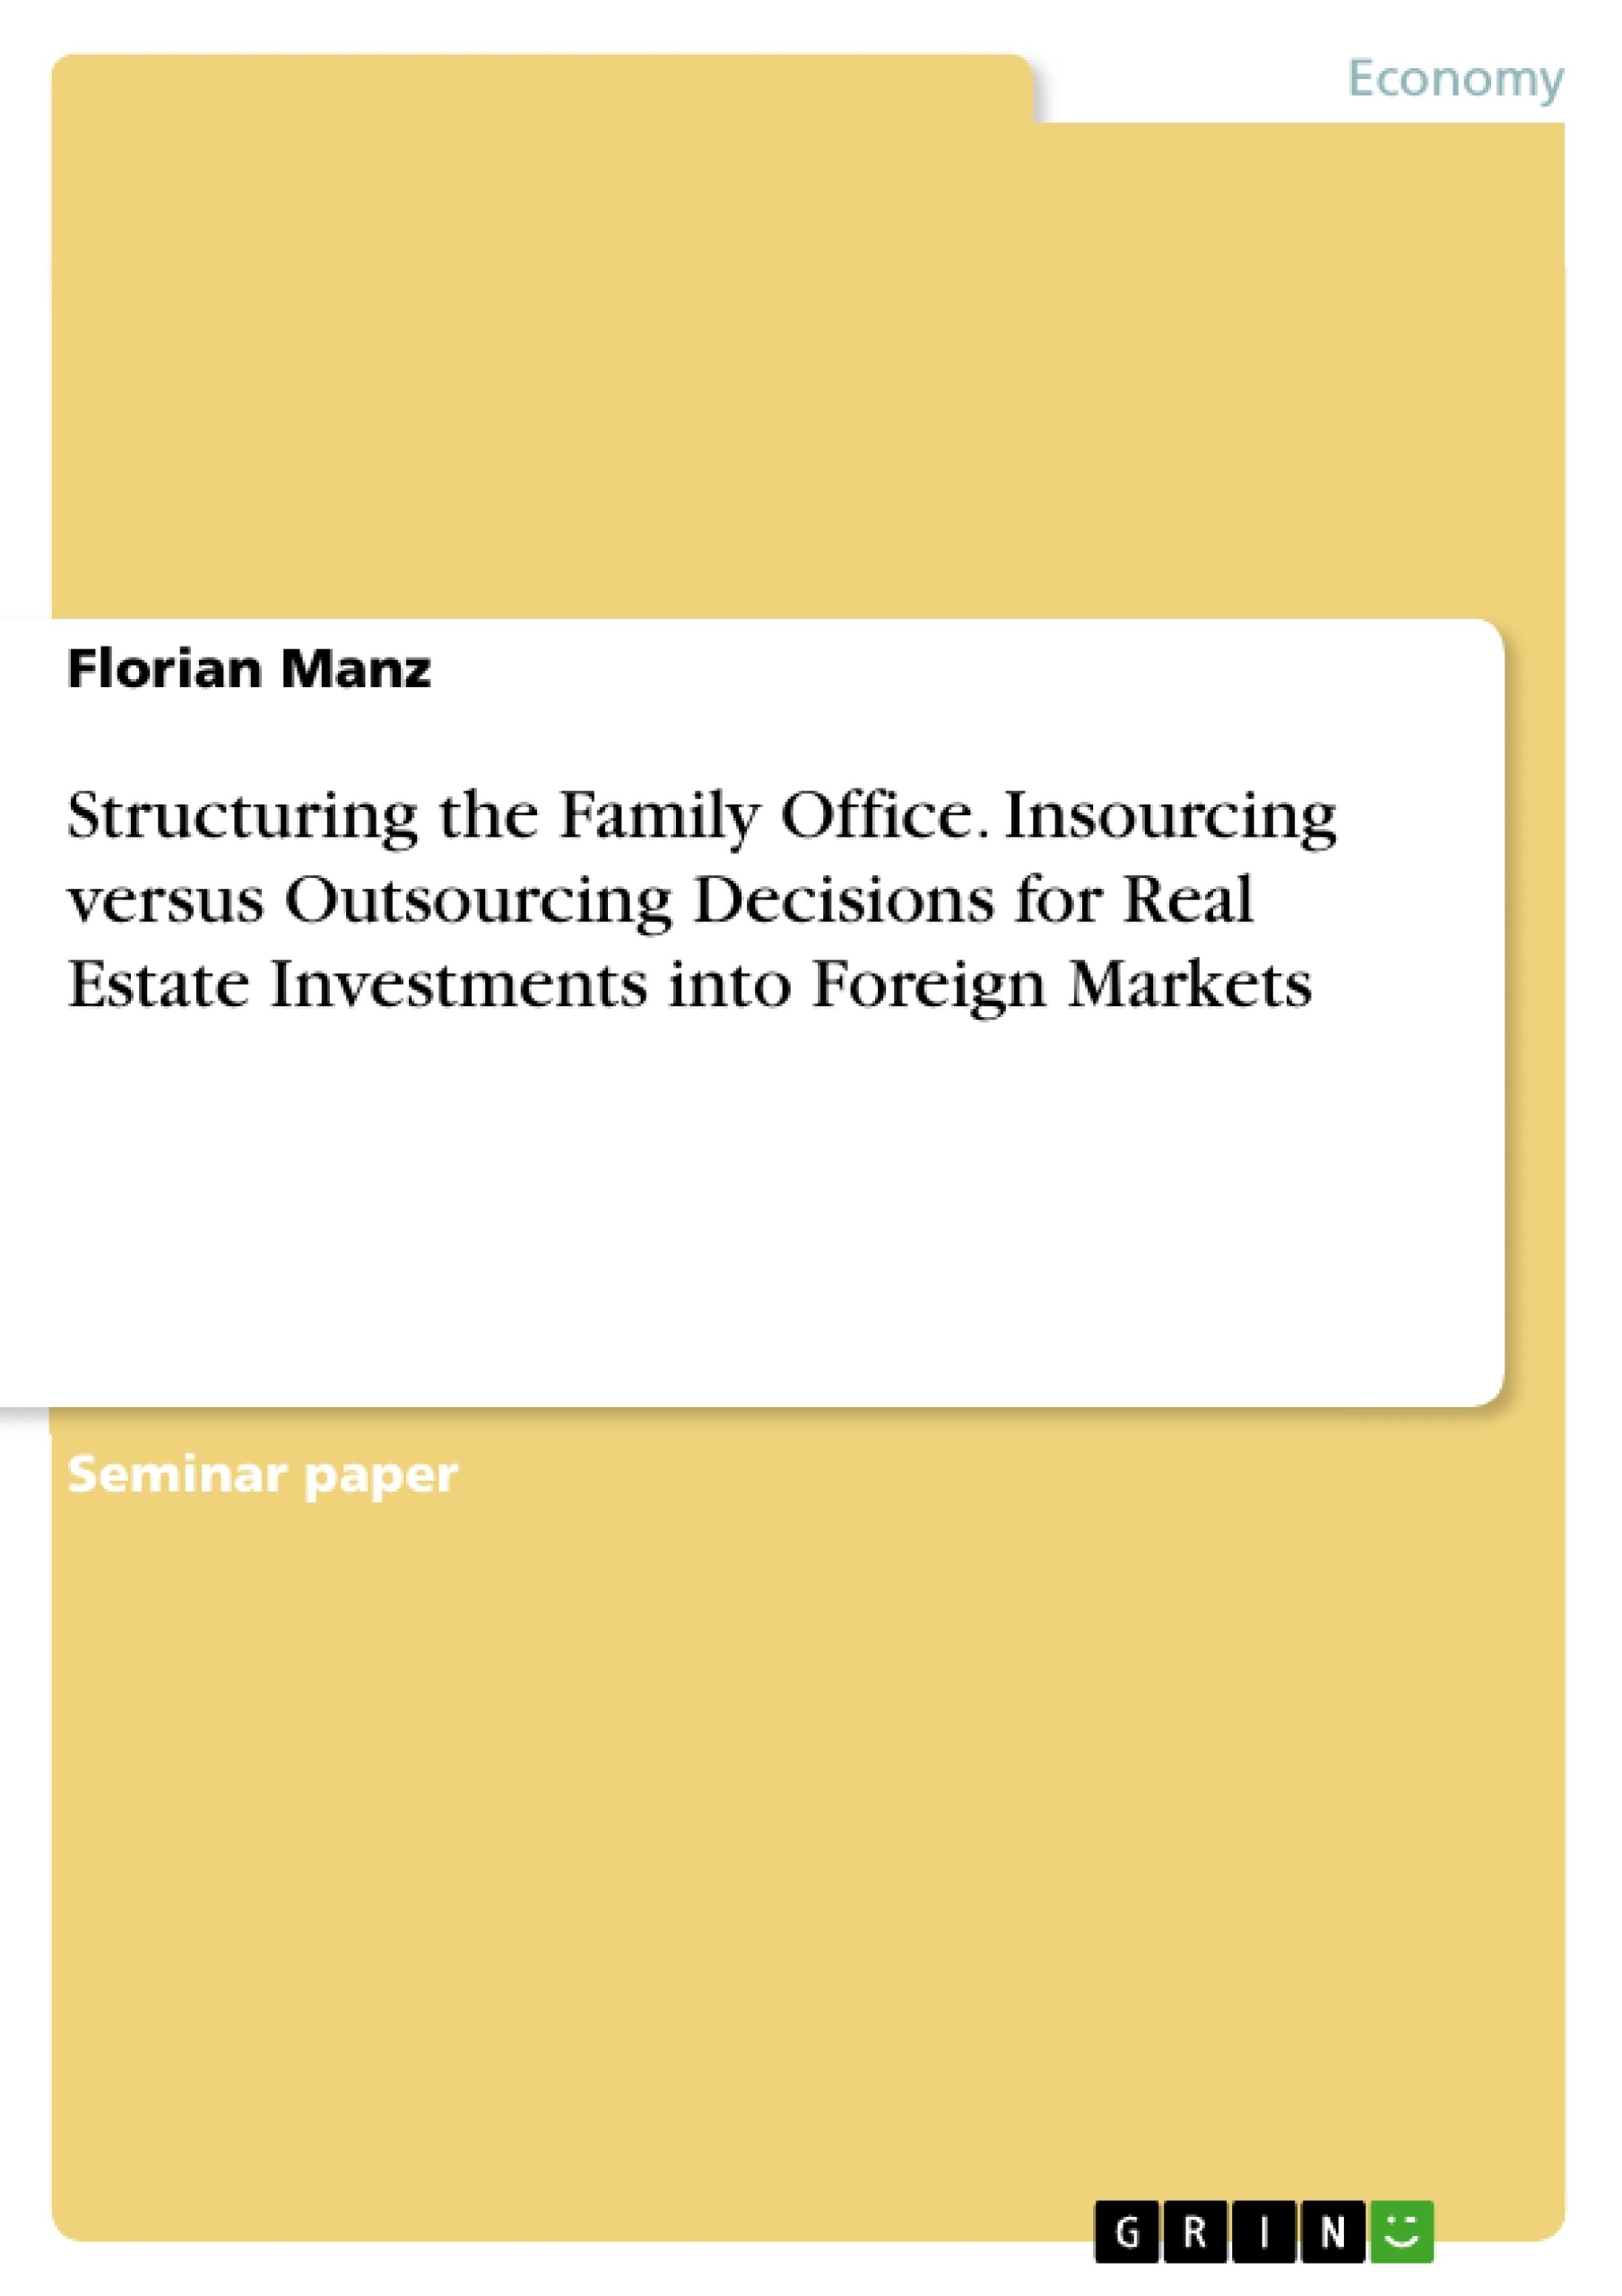 Title: Structuring the Family Office. Insourcing versus Outsourcing Decisions for Real Estate Investments into Foreign Markets